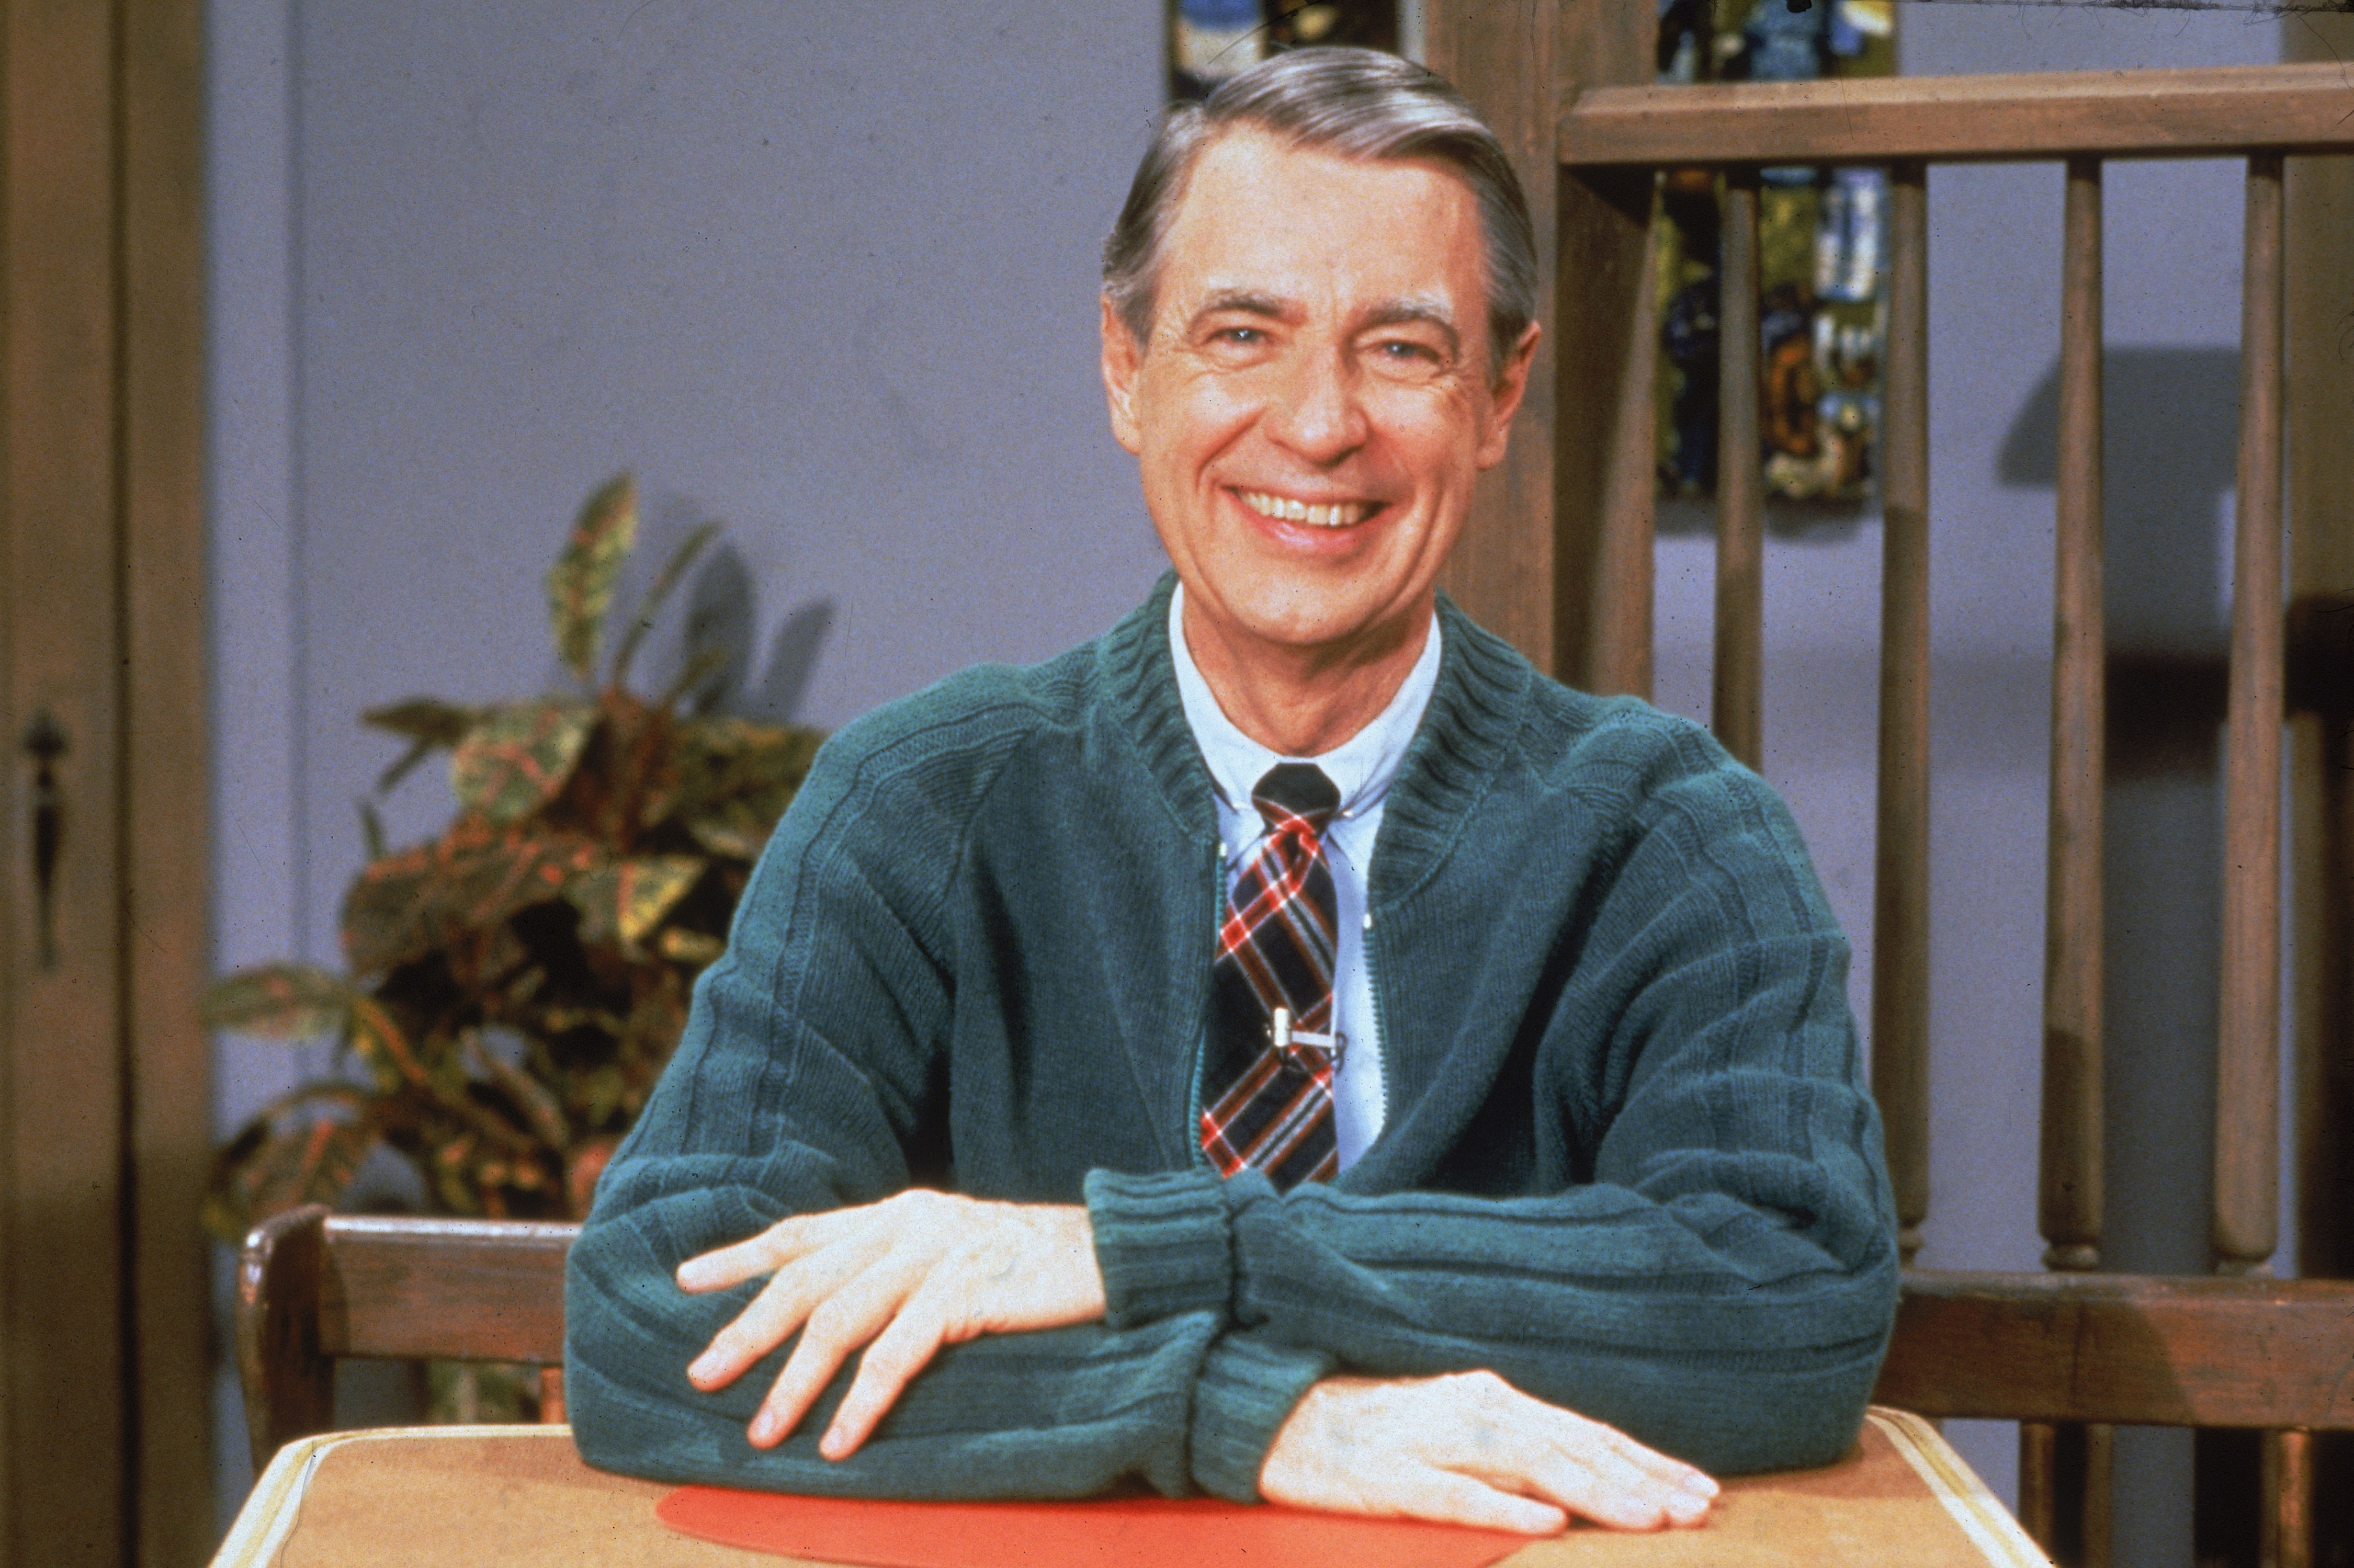 Mister Rogers Quotes That Remind Us All to Be Good Neighbors